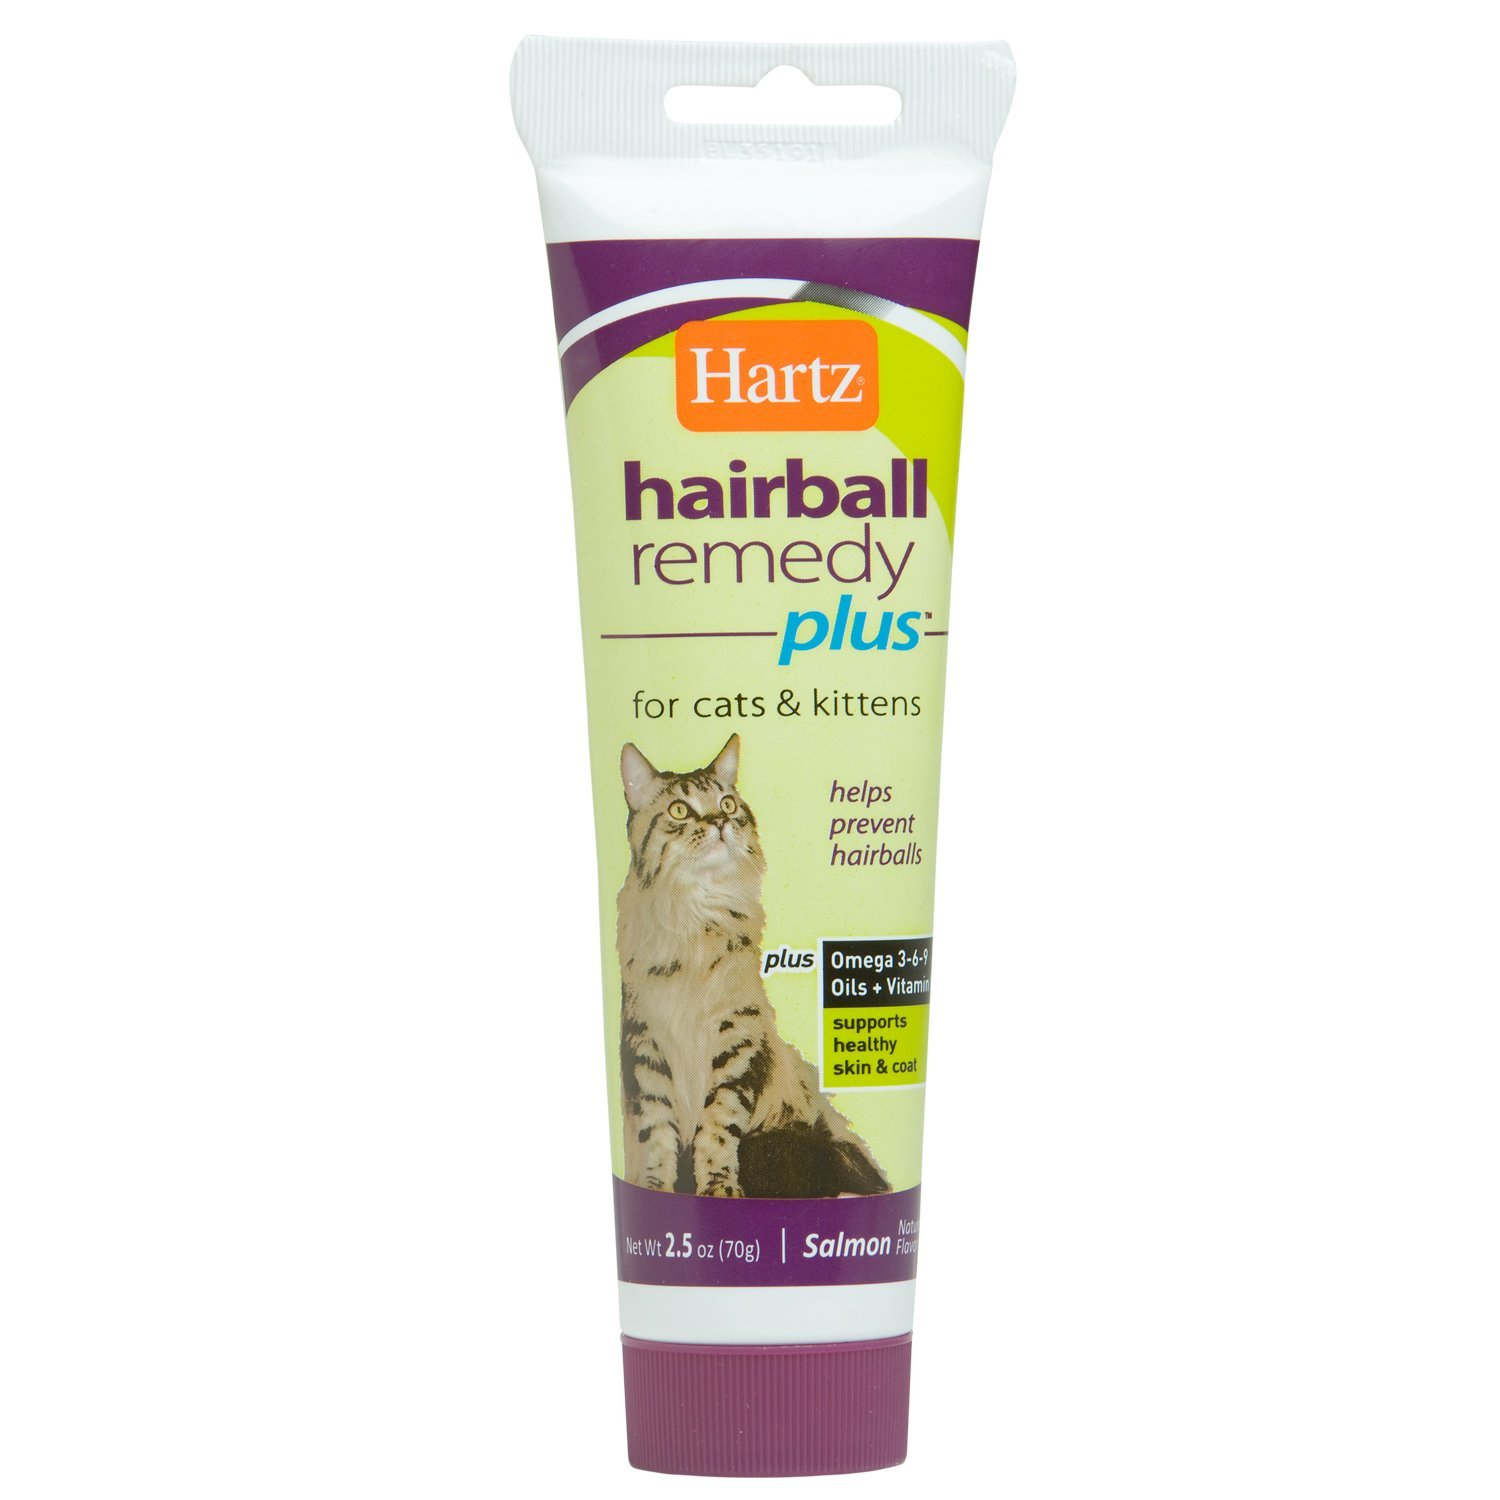 Hartz Hairball Remedy Plus Paste for Cats and Kittens